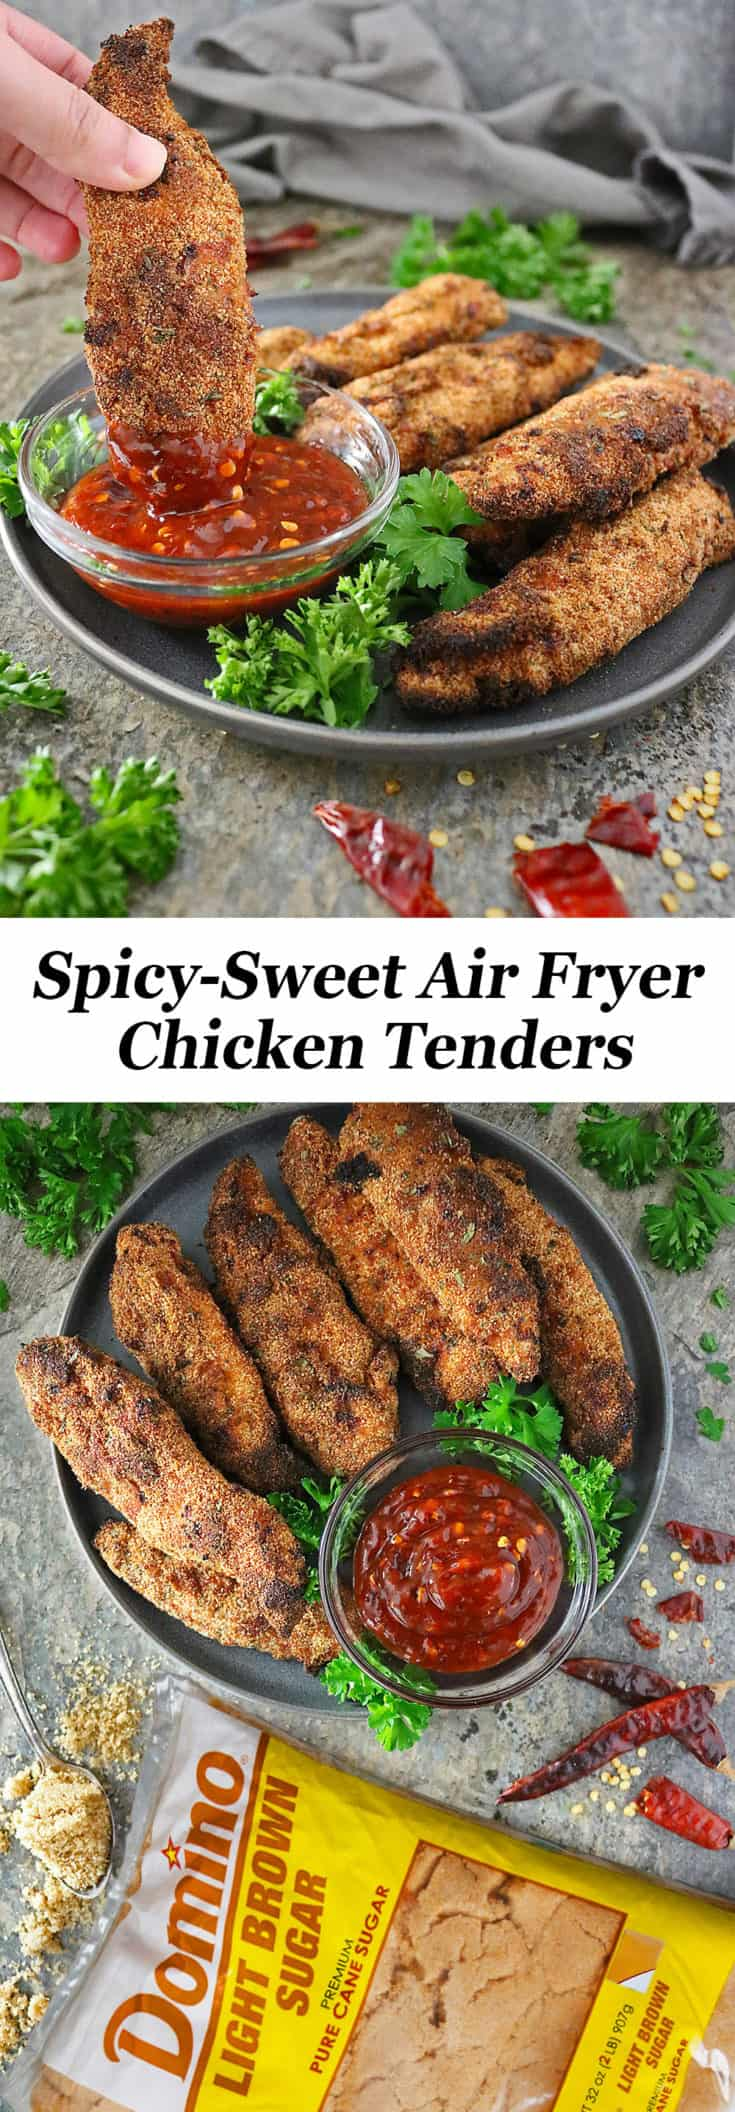 These chicken tenders are a favorite in our home. We are in the middle of unpacking and our air fryer is the first thing getting unpacked because these Spicy-Sweet Air Fryer Chicken Tenders are so darn quick and easy to whip up!